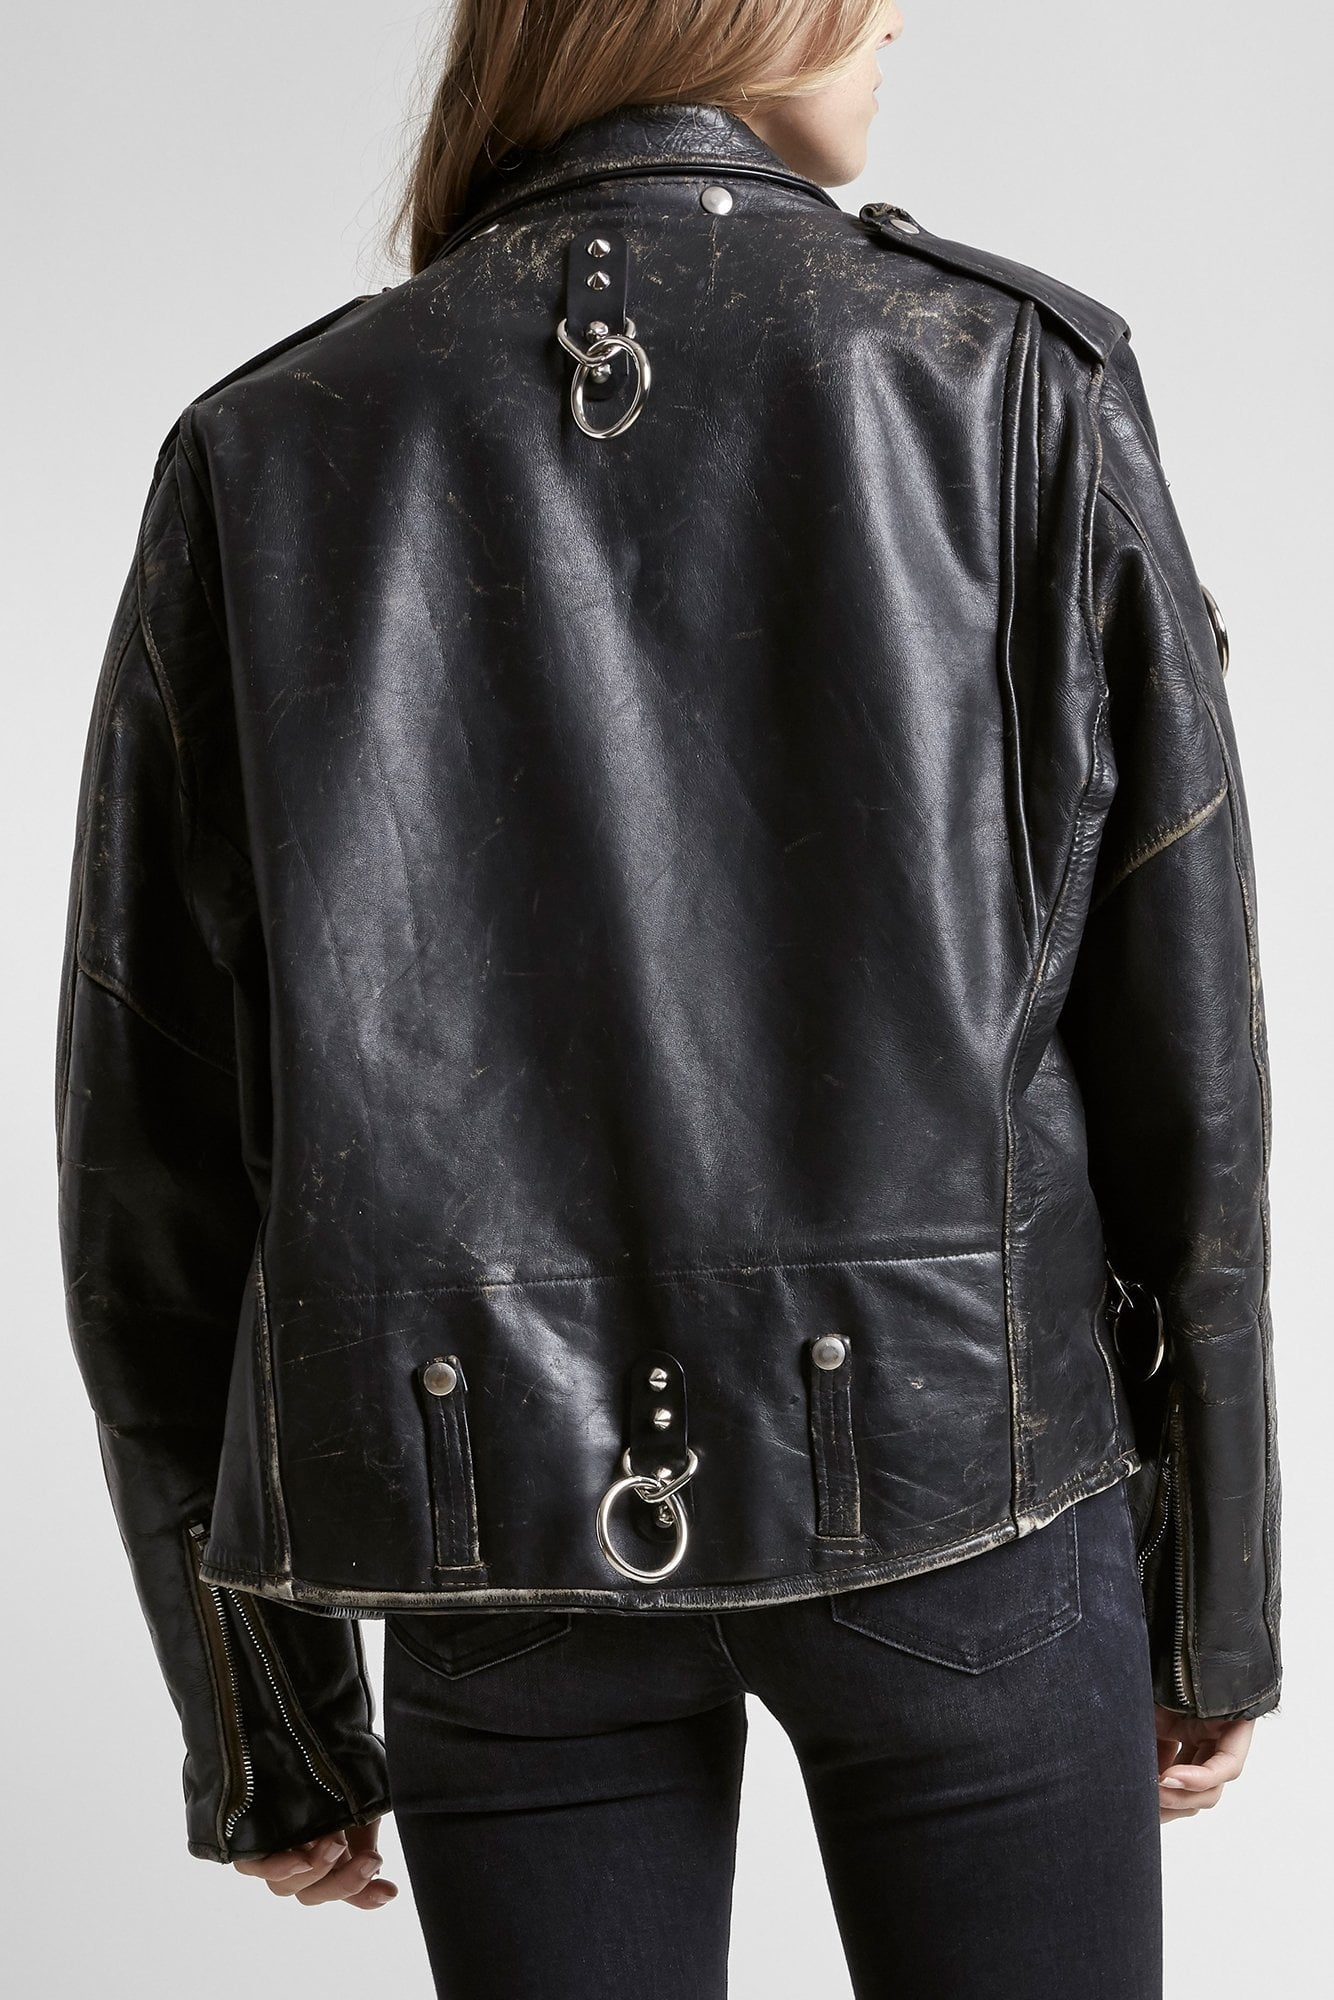 Refurbished Leather Jacket With Rings